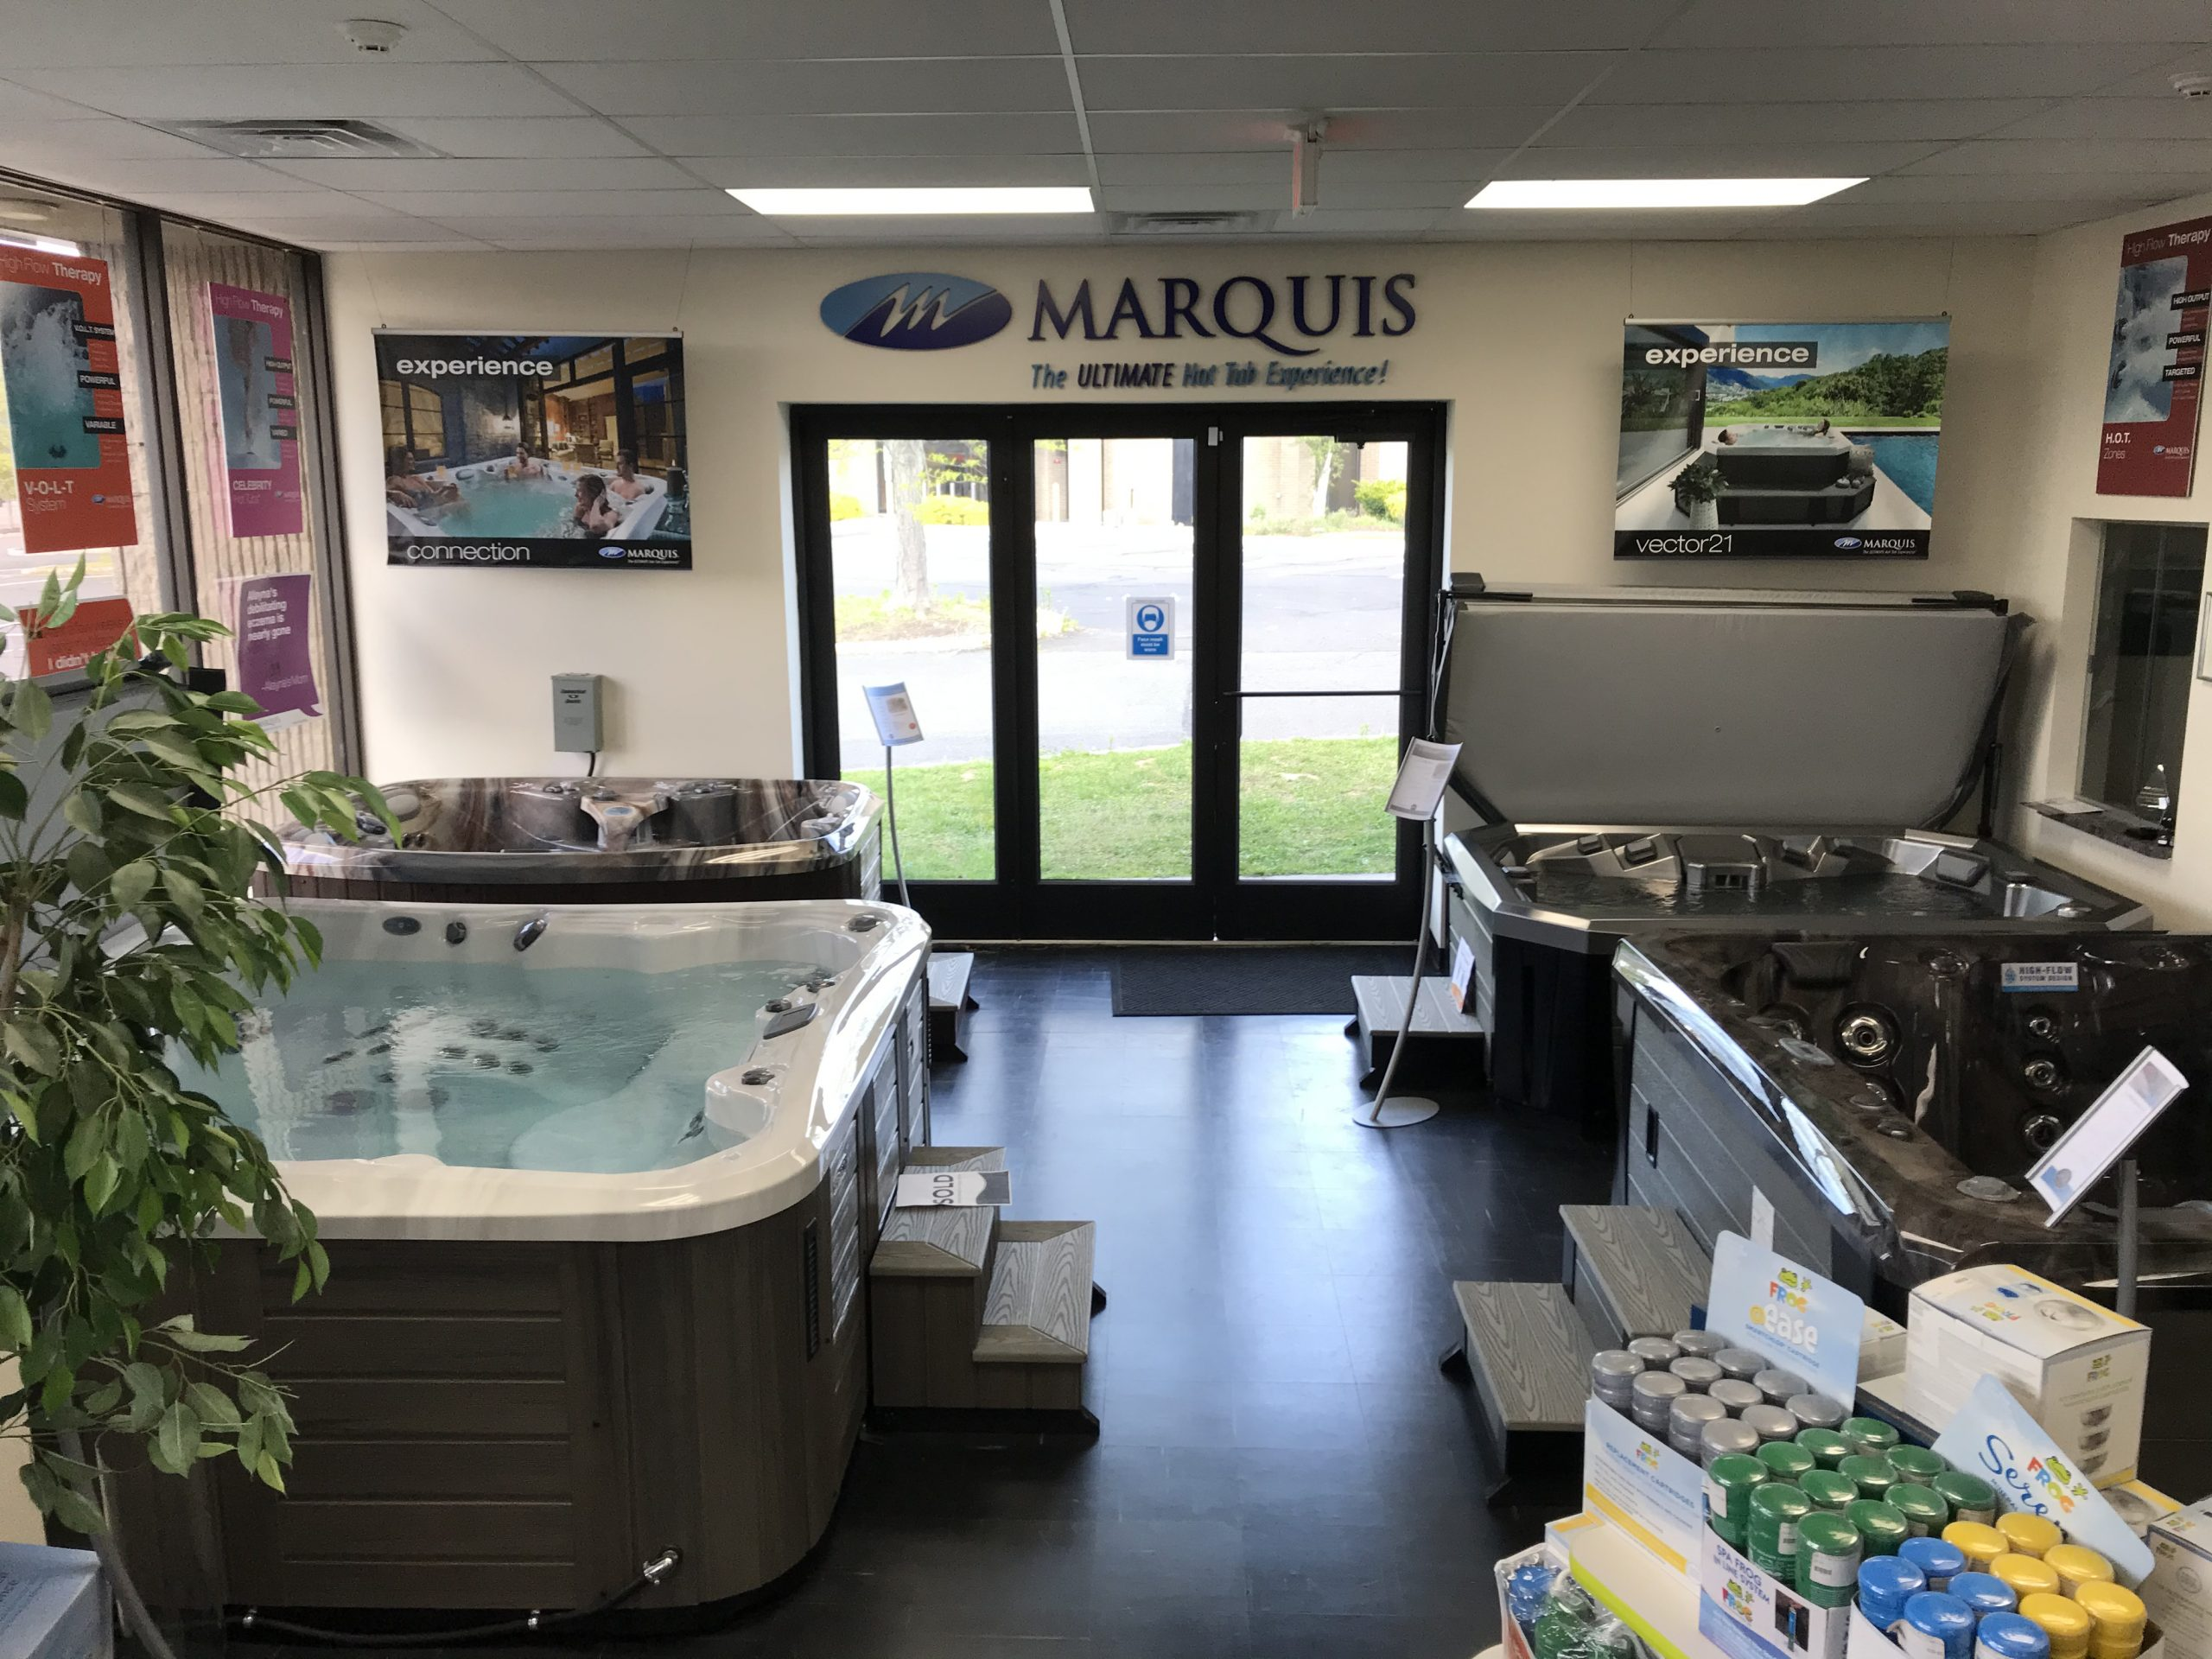 Hot Tub Store in Lawrenceville